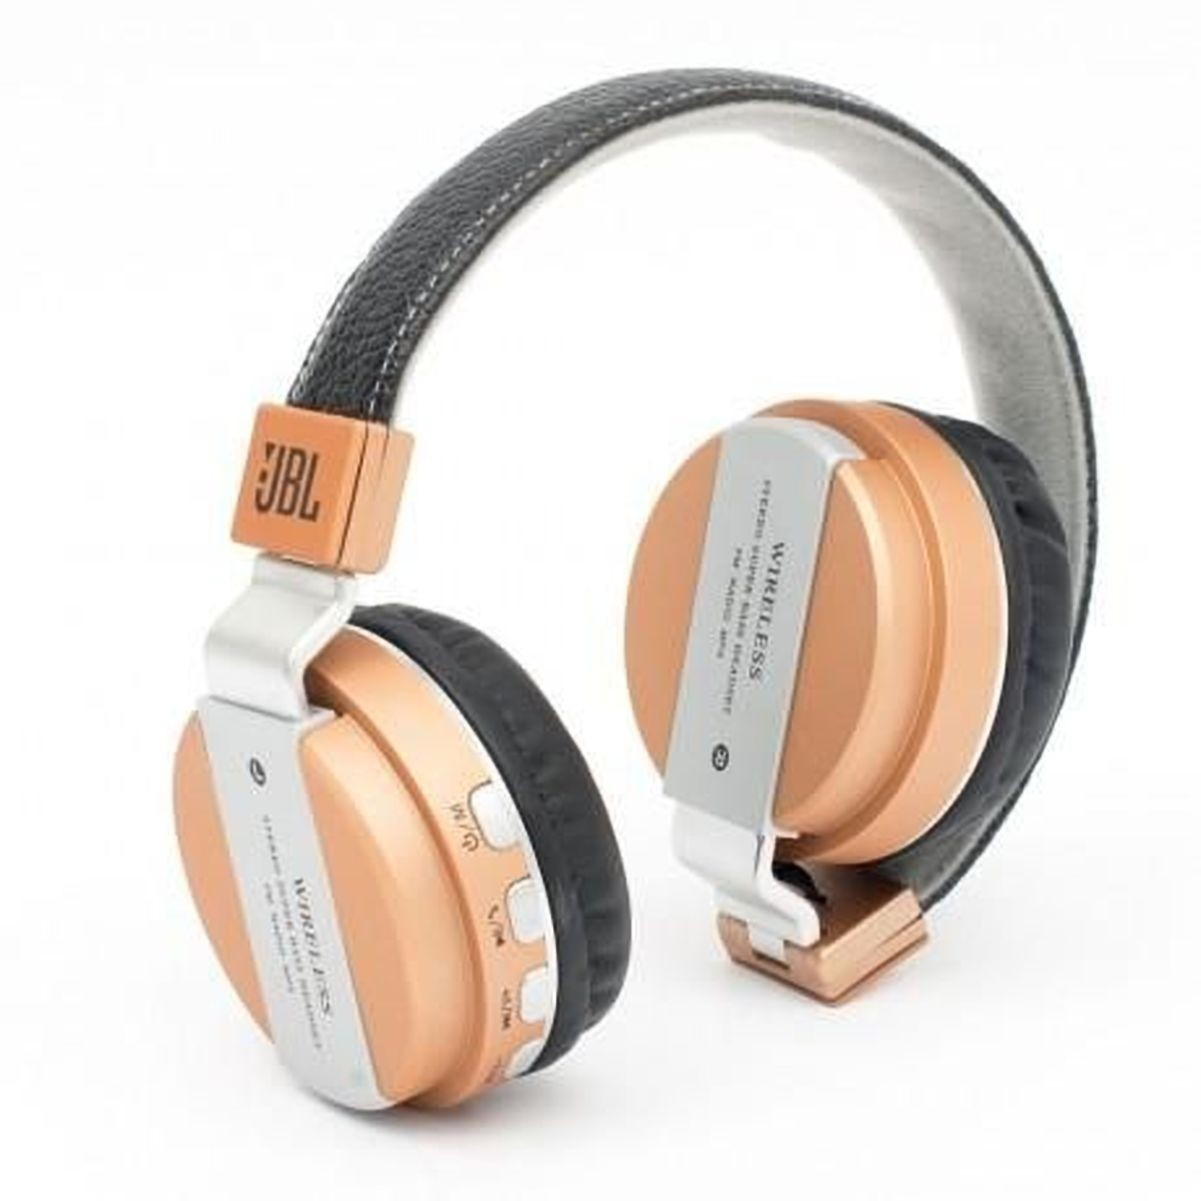 JBL JB55 Wireless Headphone